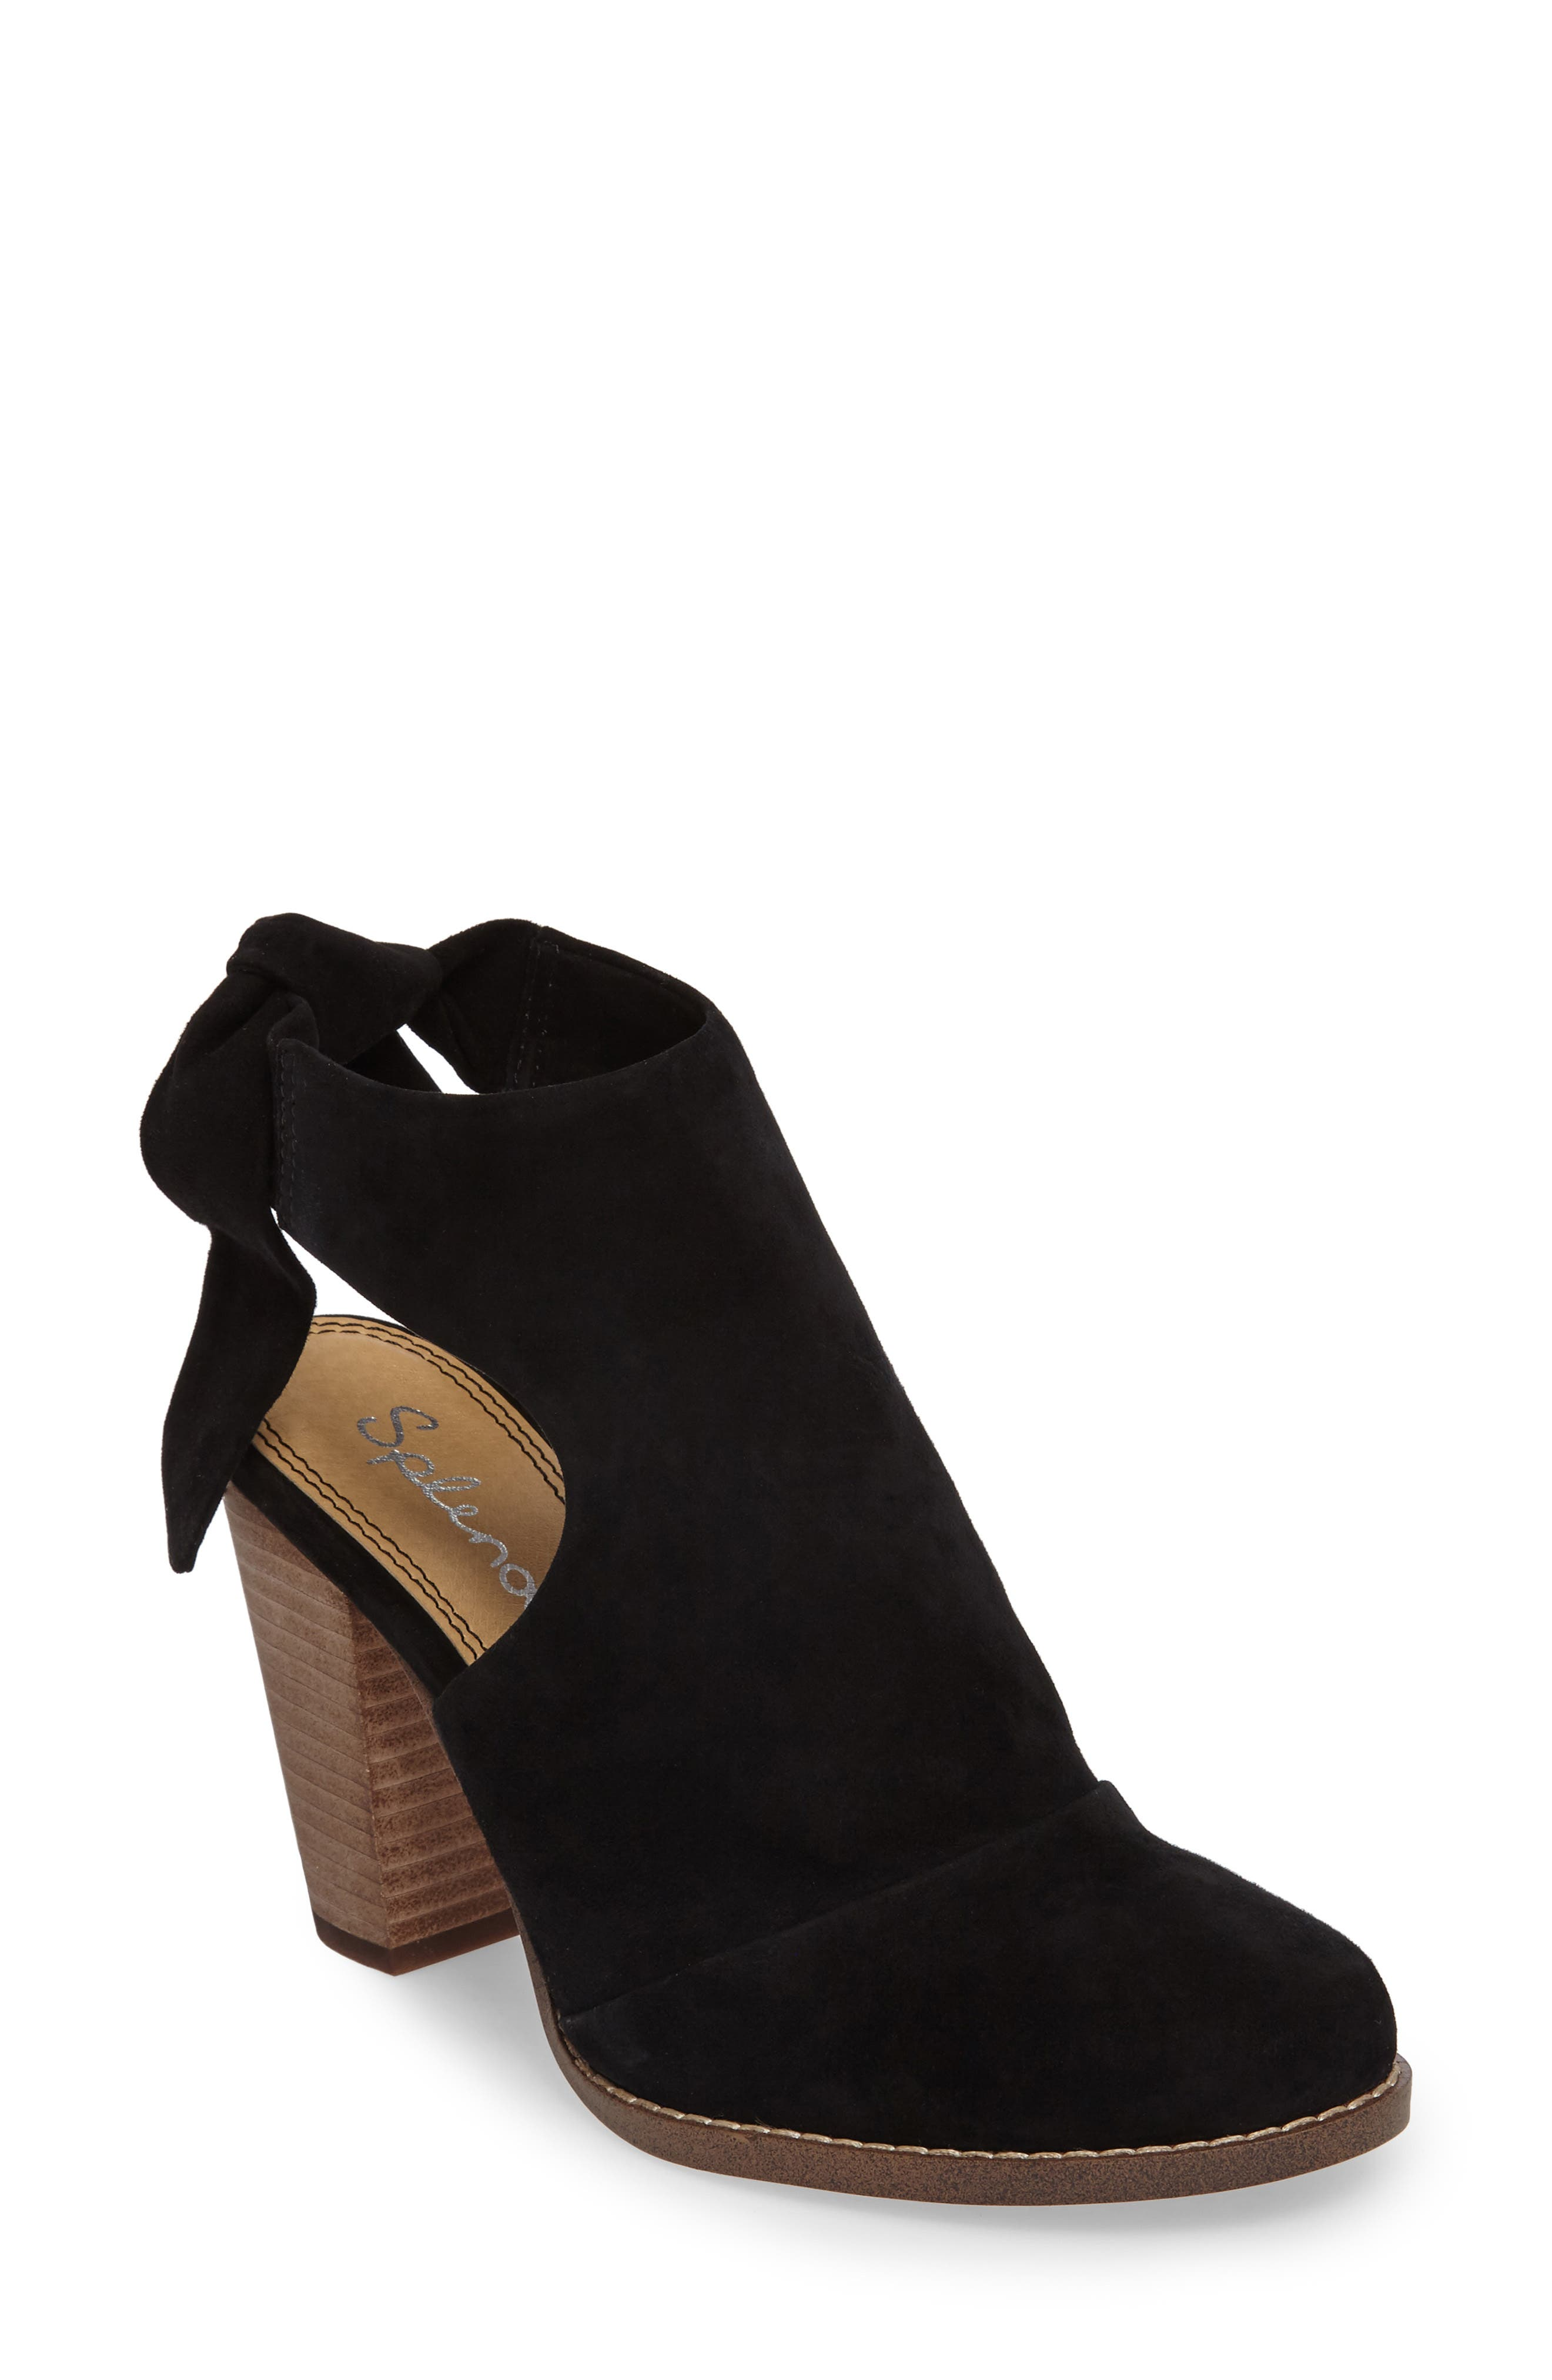 Danae Stacked Heel Bootie,                             Main thumbnail 1, color,                             013